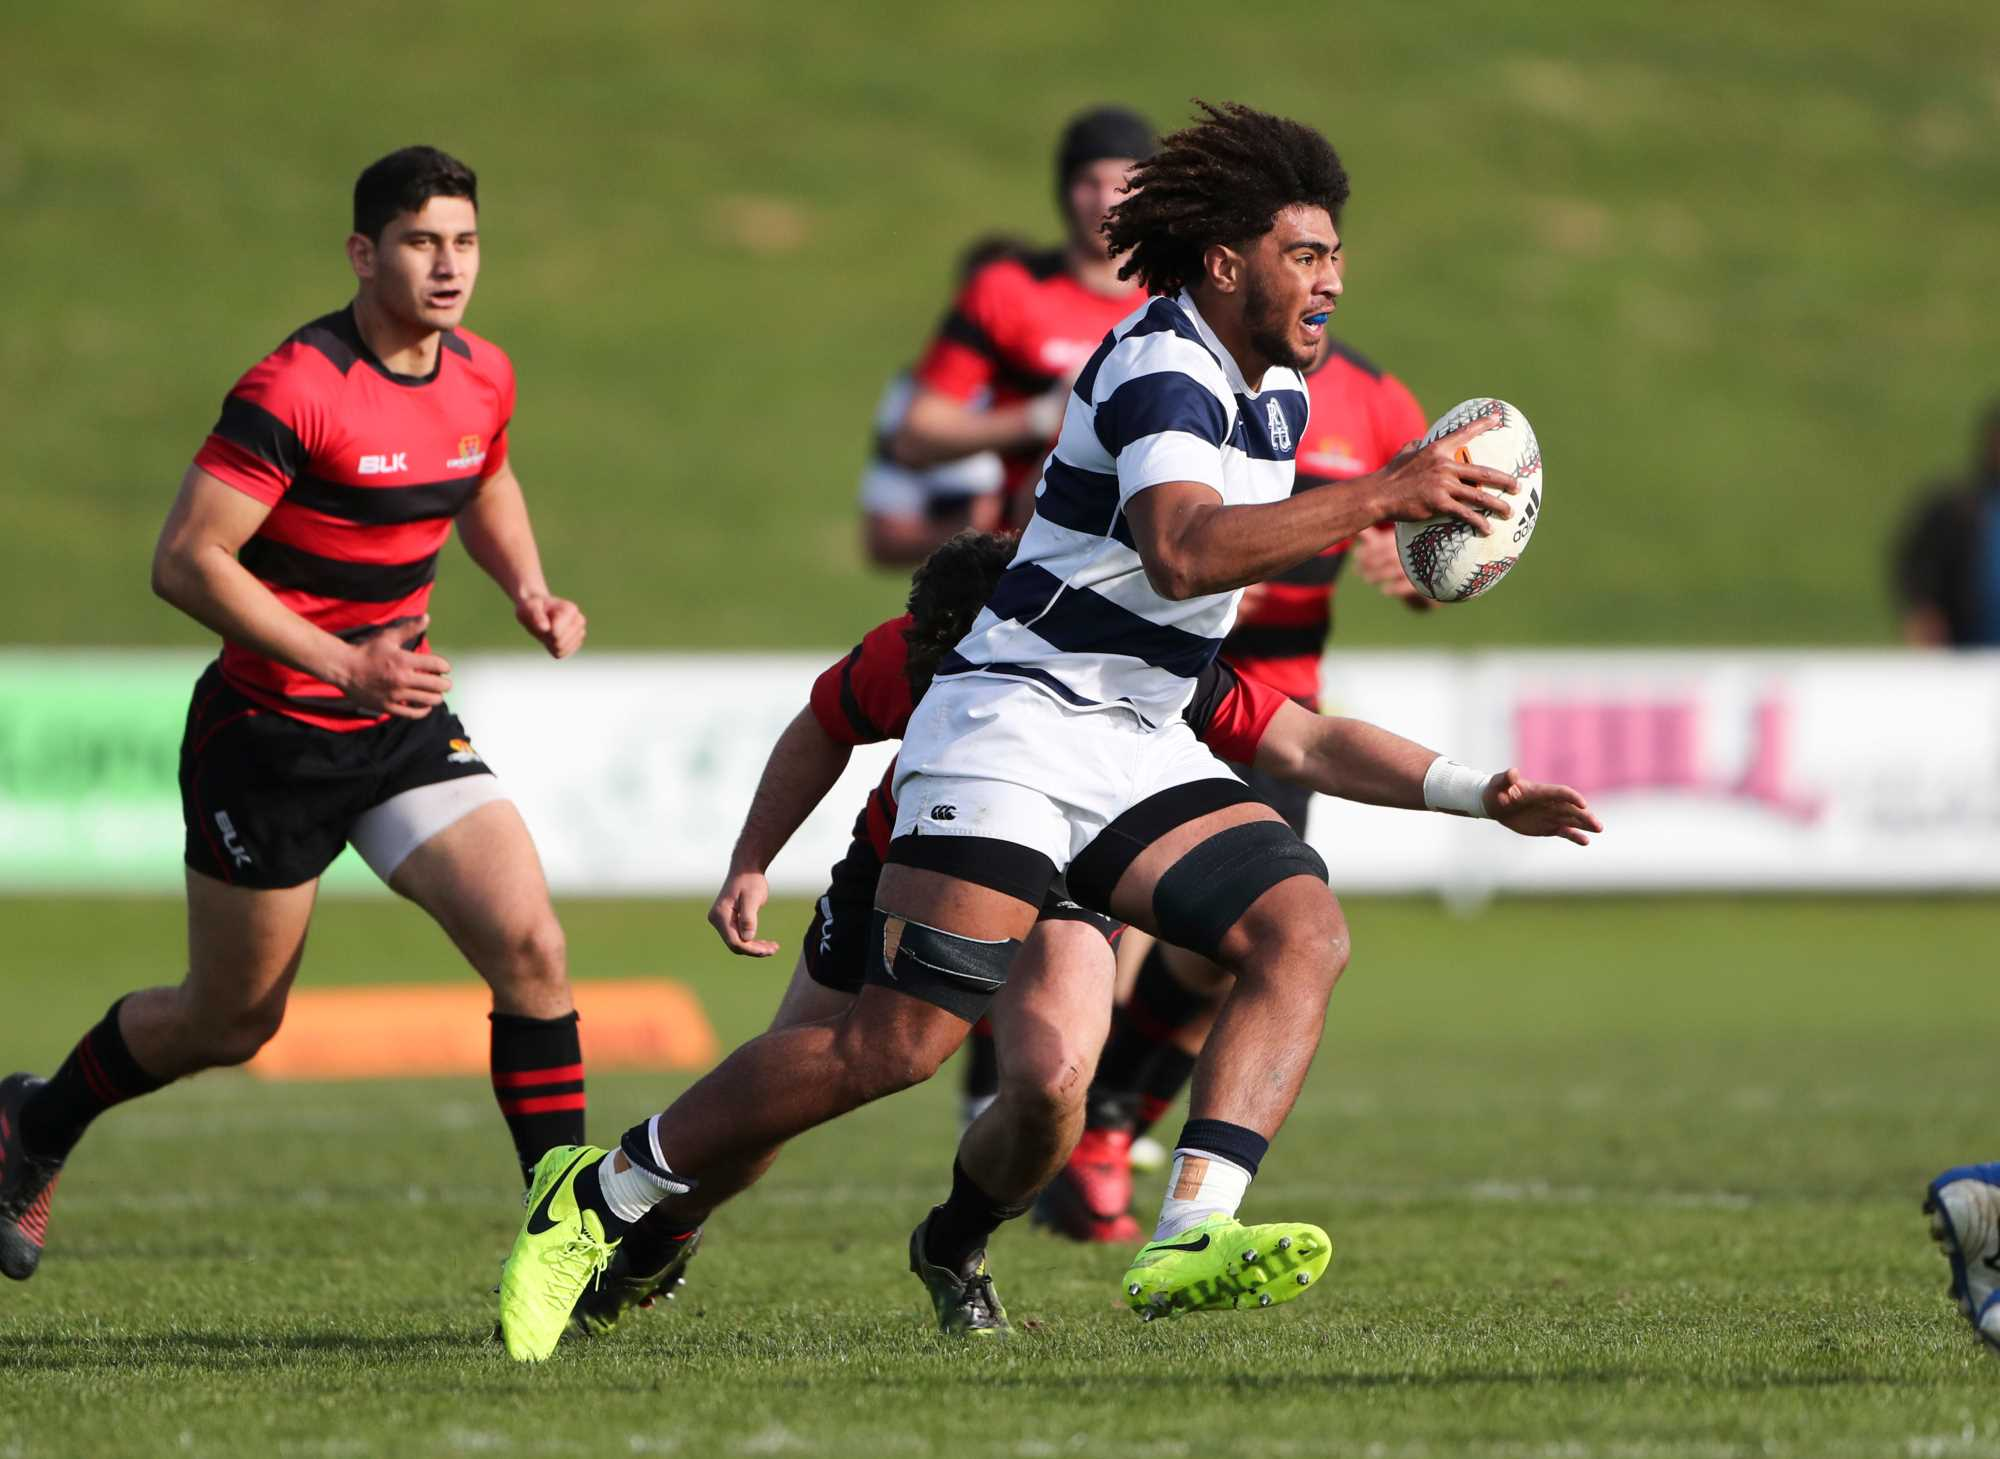 Auckland's next generation to suit up in black for Oceania tournament